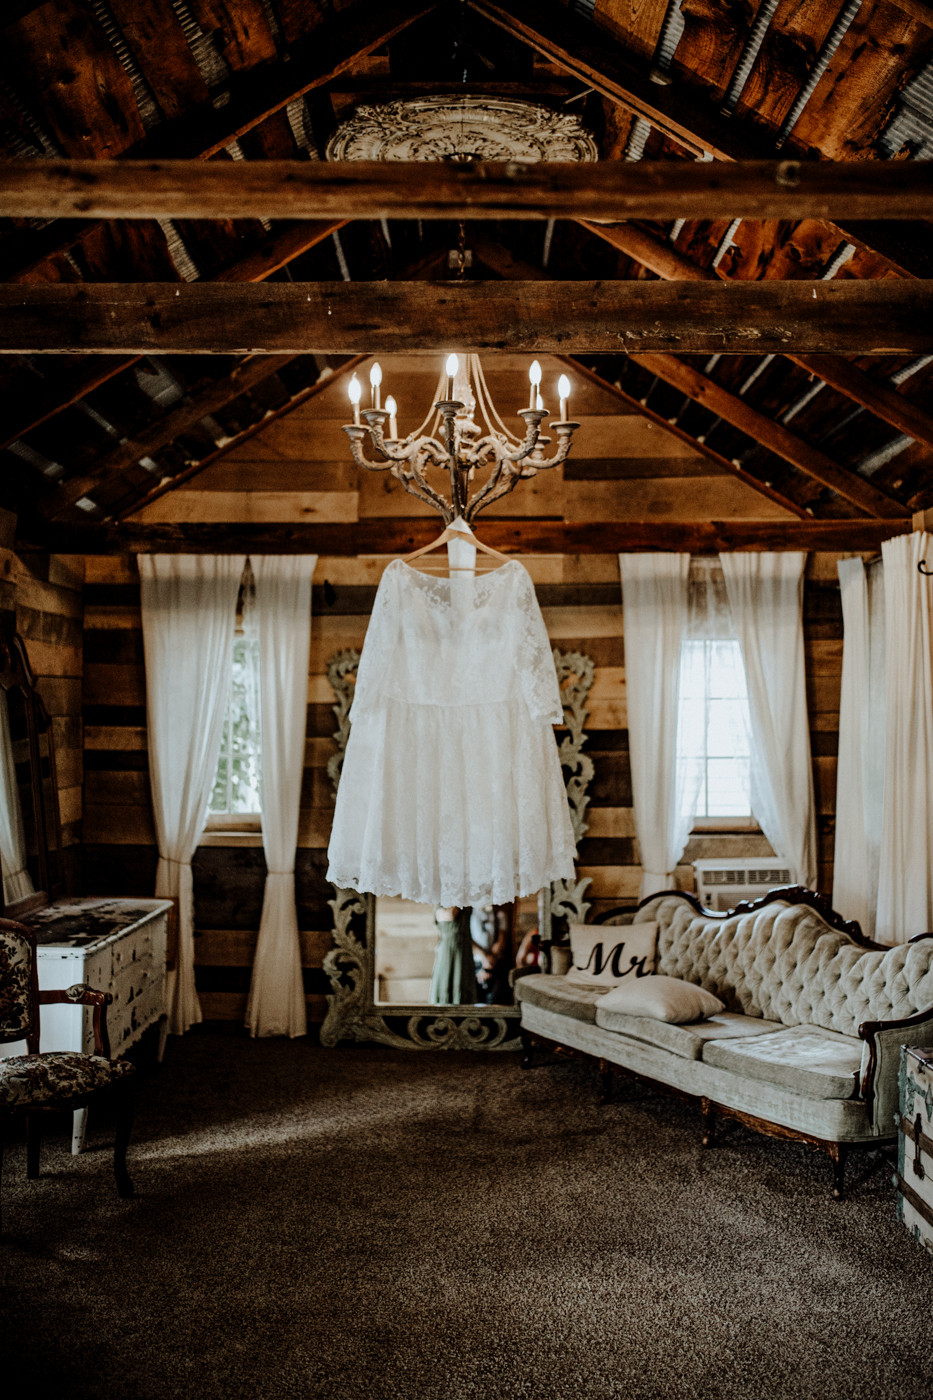 wedding dress from LaceMarry on etsy. photos by little blue bird photography at the milestone barn in bannister michigan.